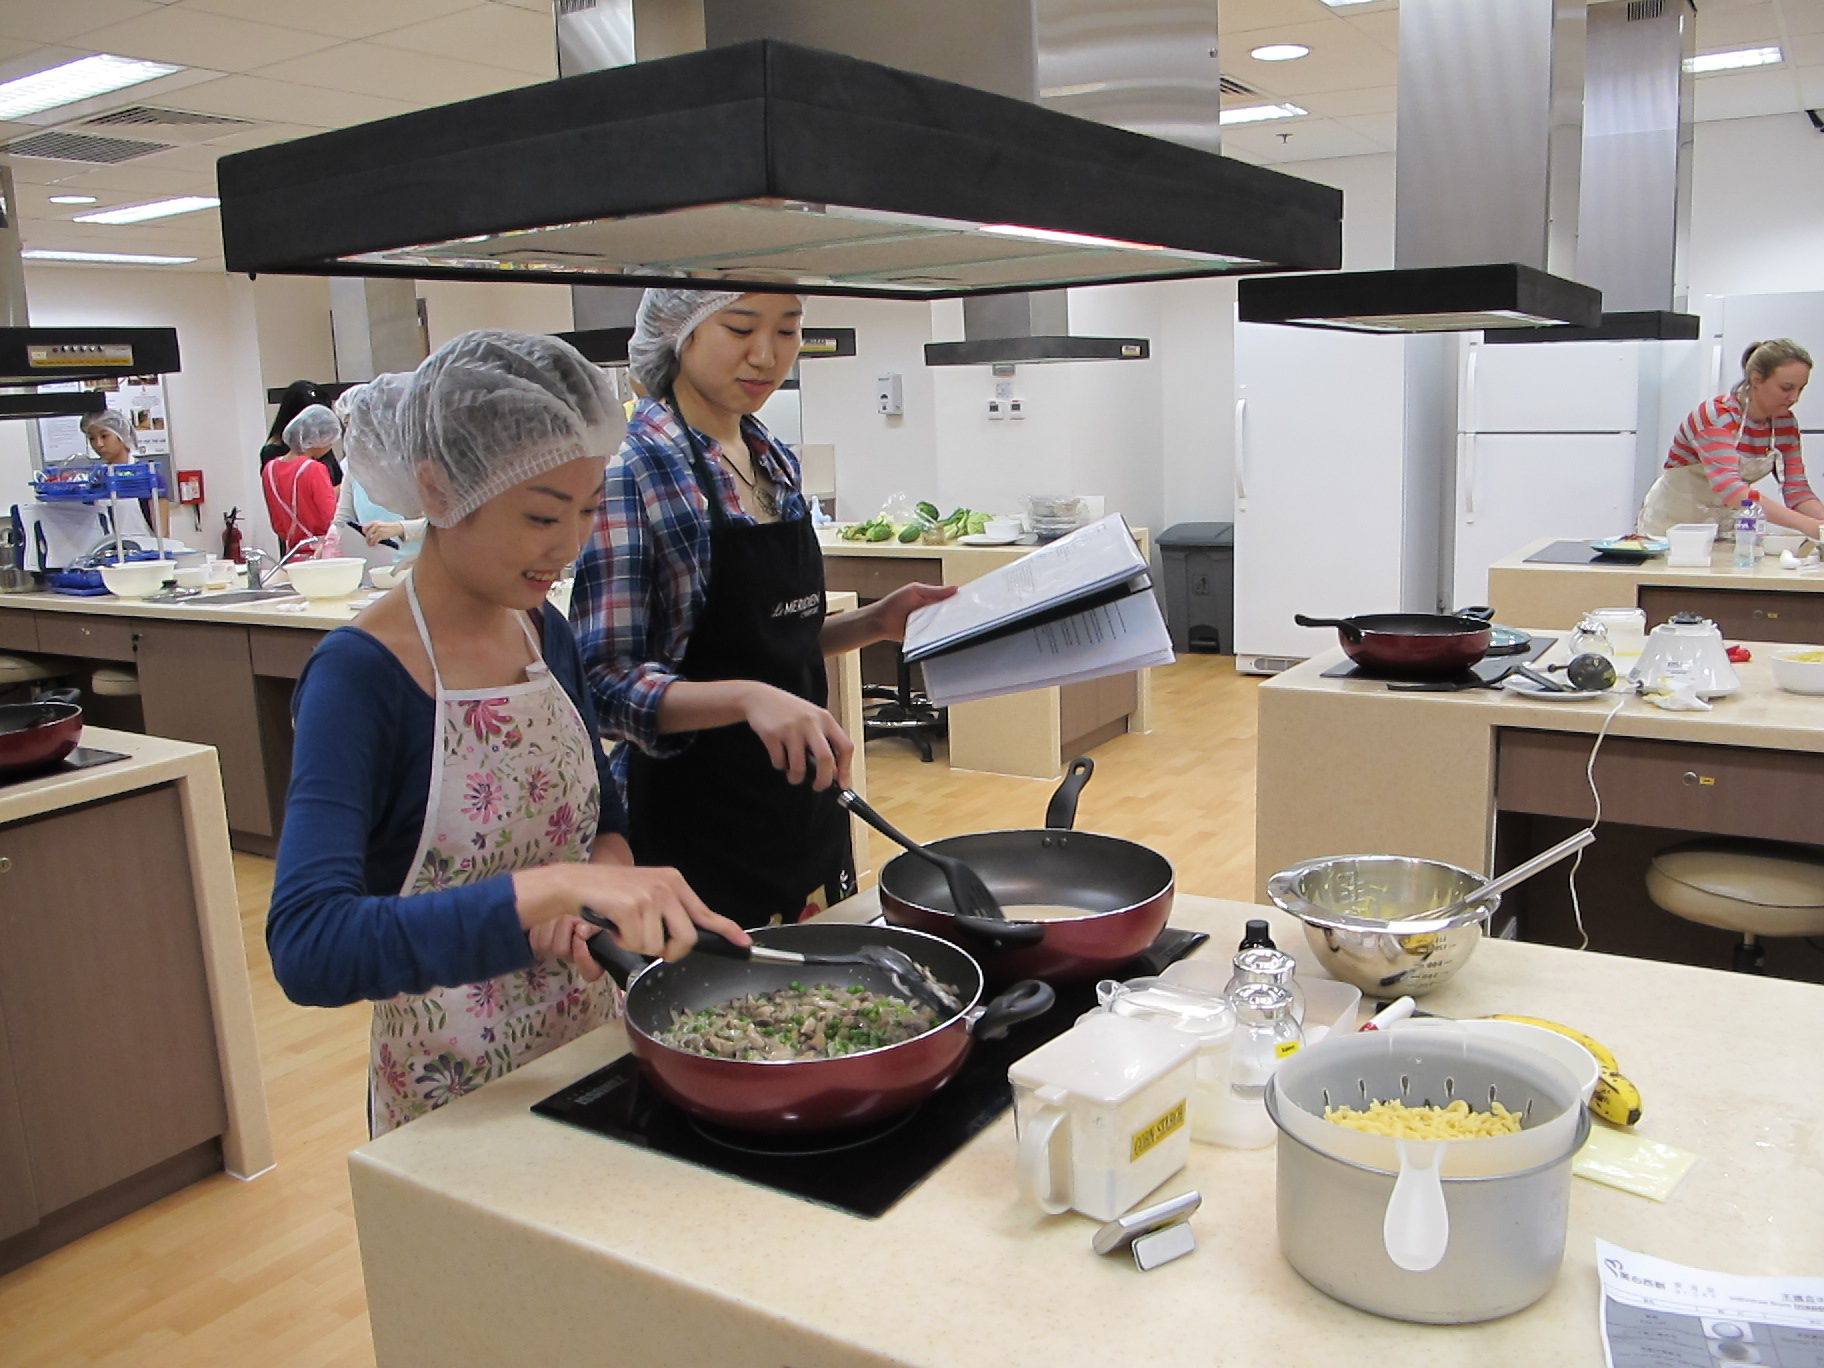 Feeding Hong Kong – Prepare nutritious, simple and low budget cookbook for the needy - Photo - 69